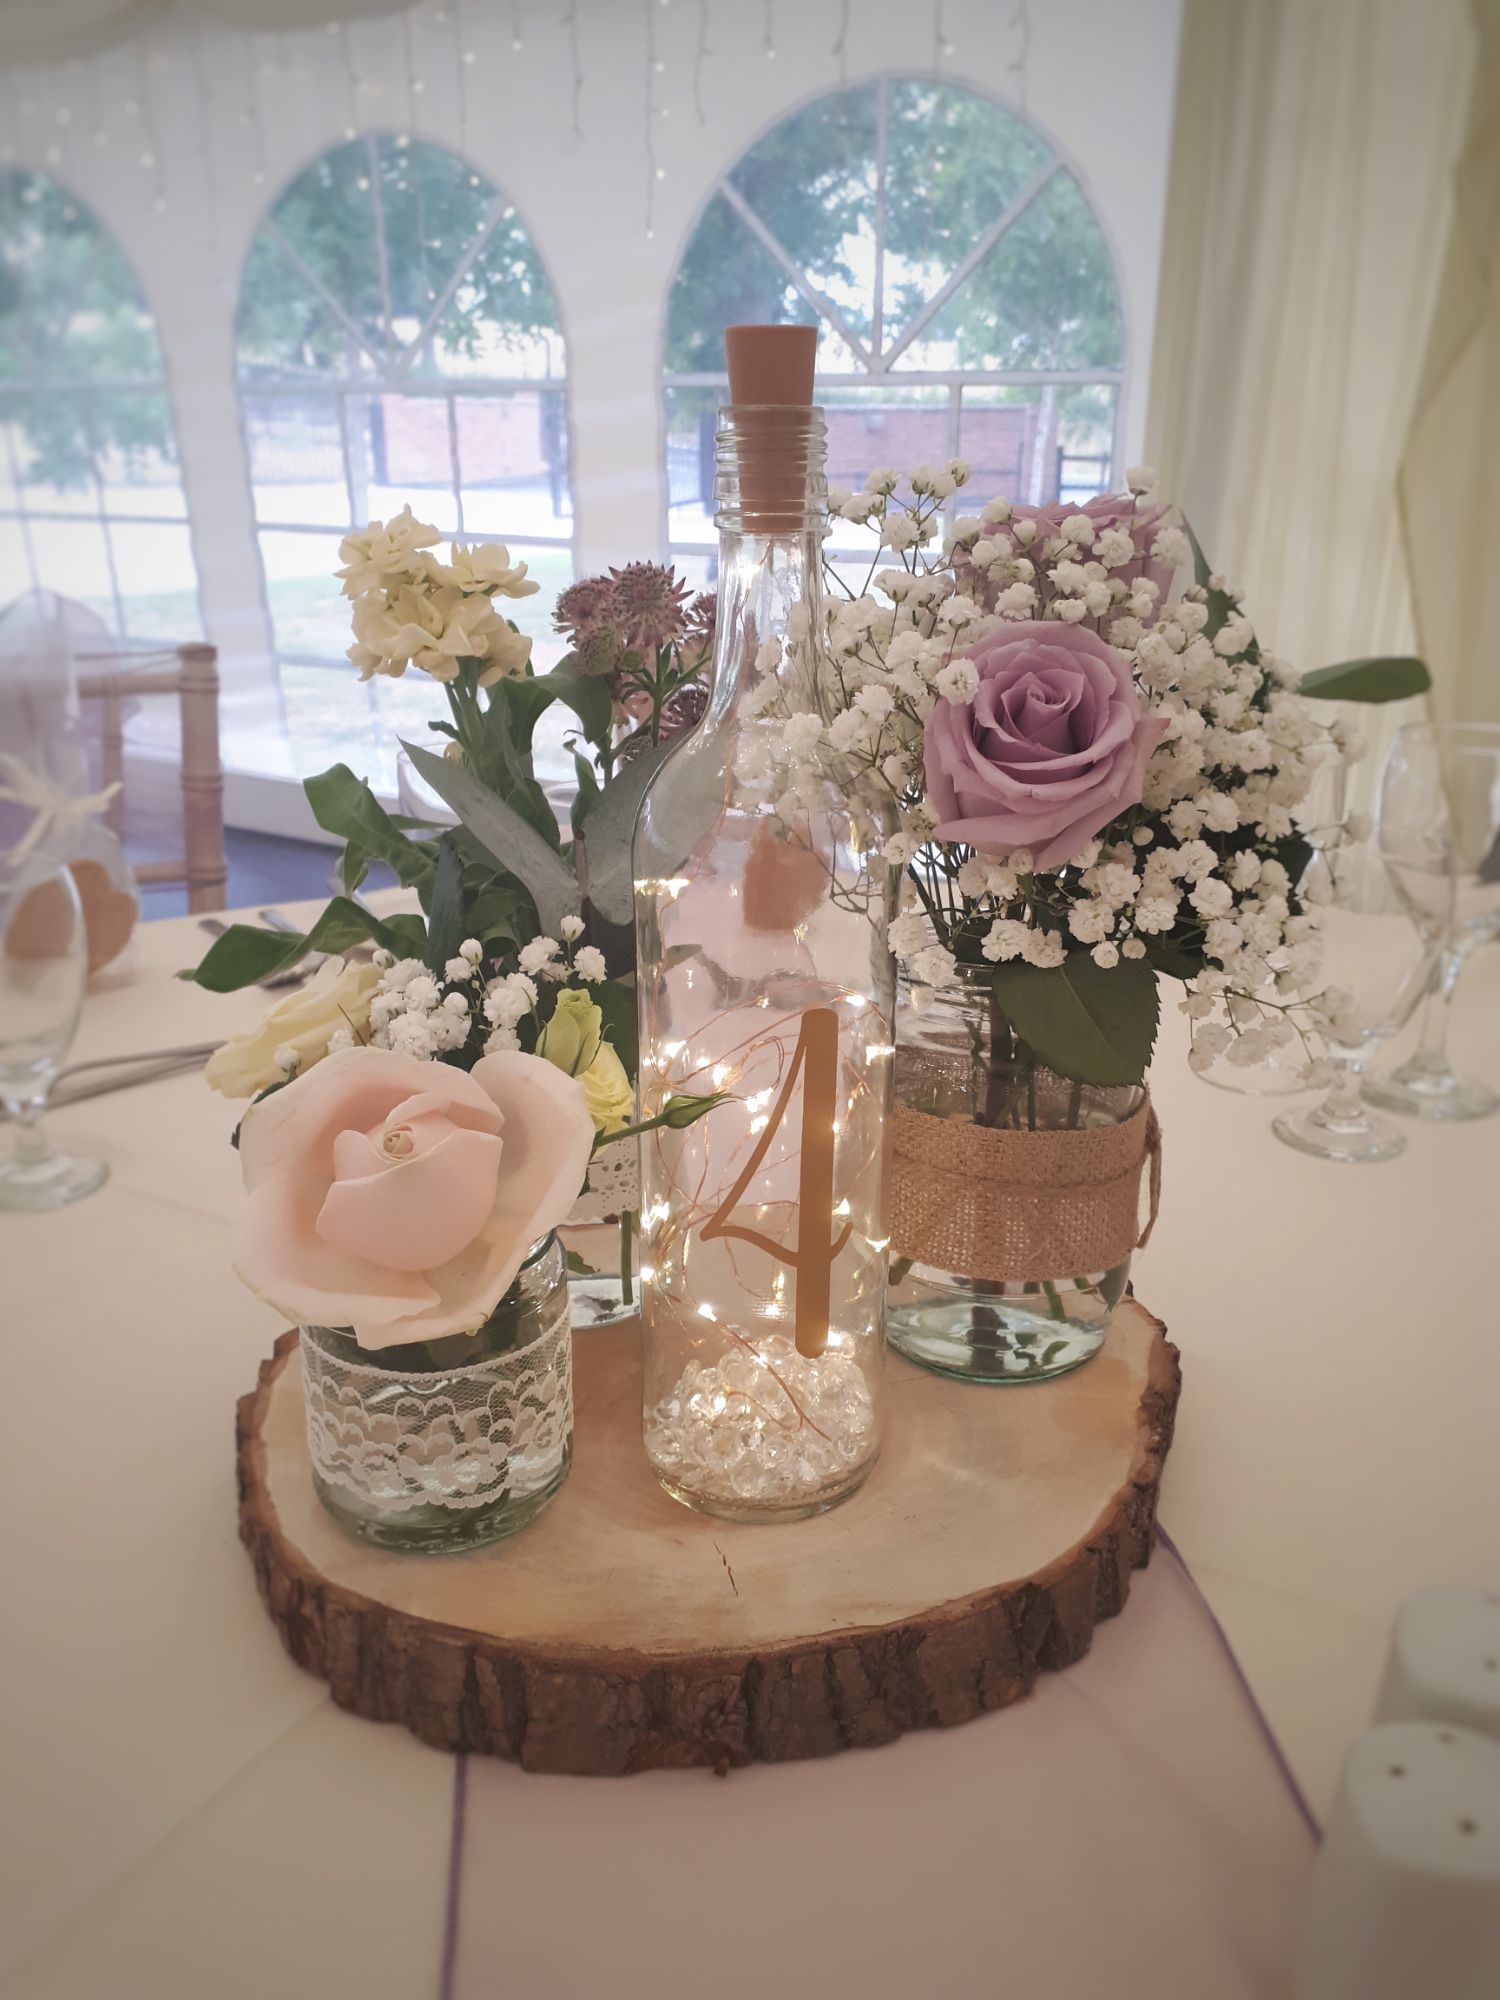 Jam jar flowers wedding